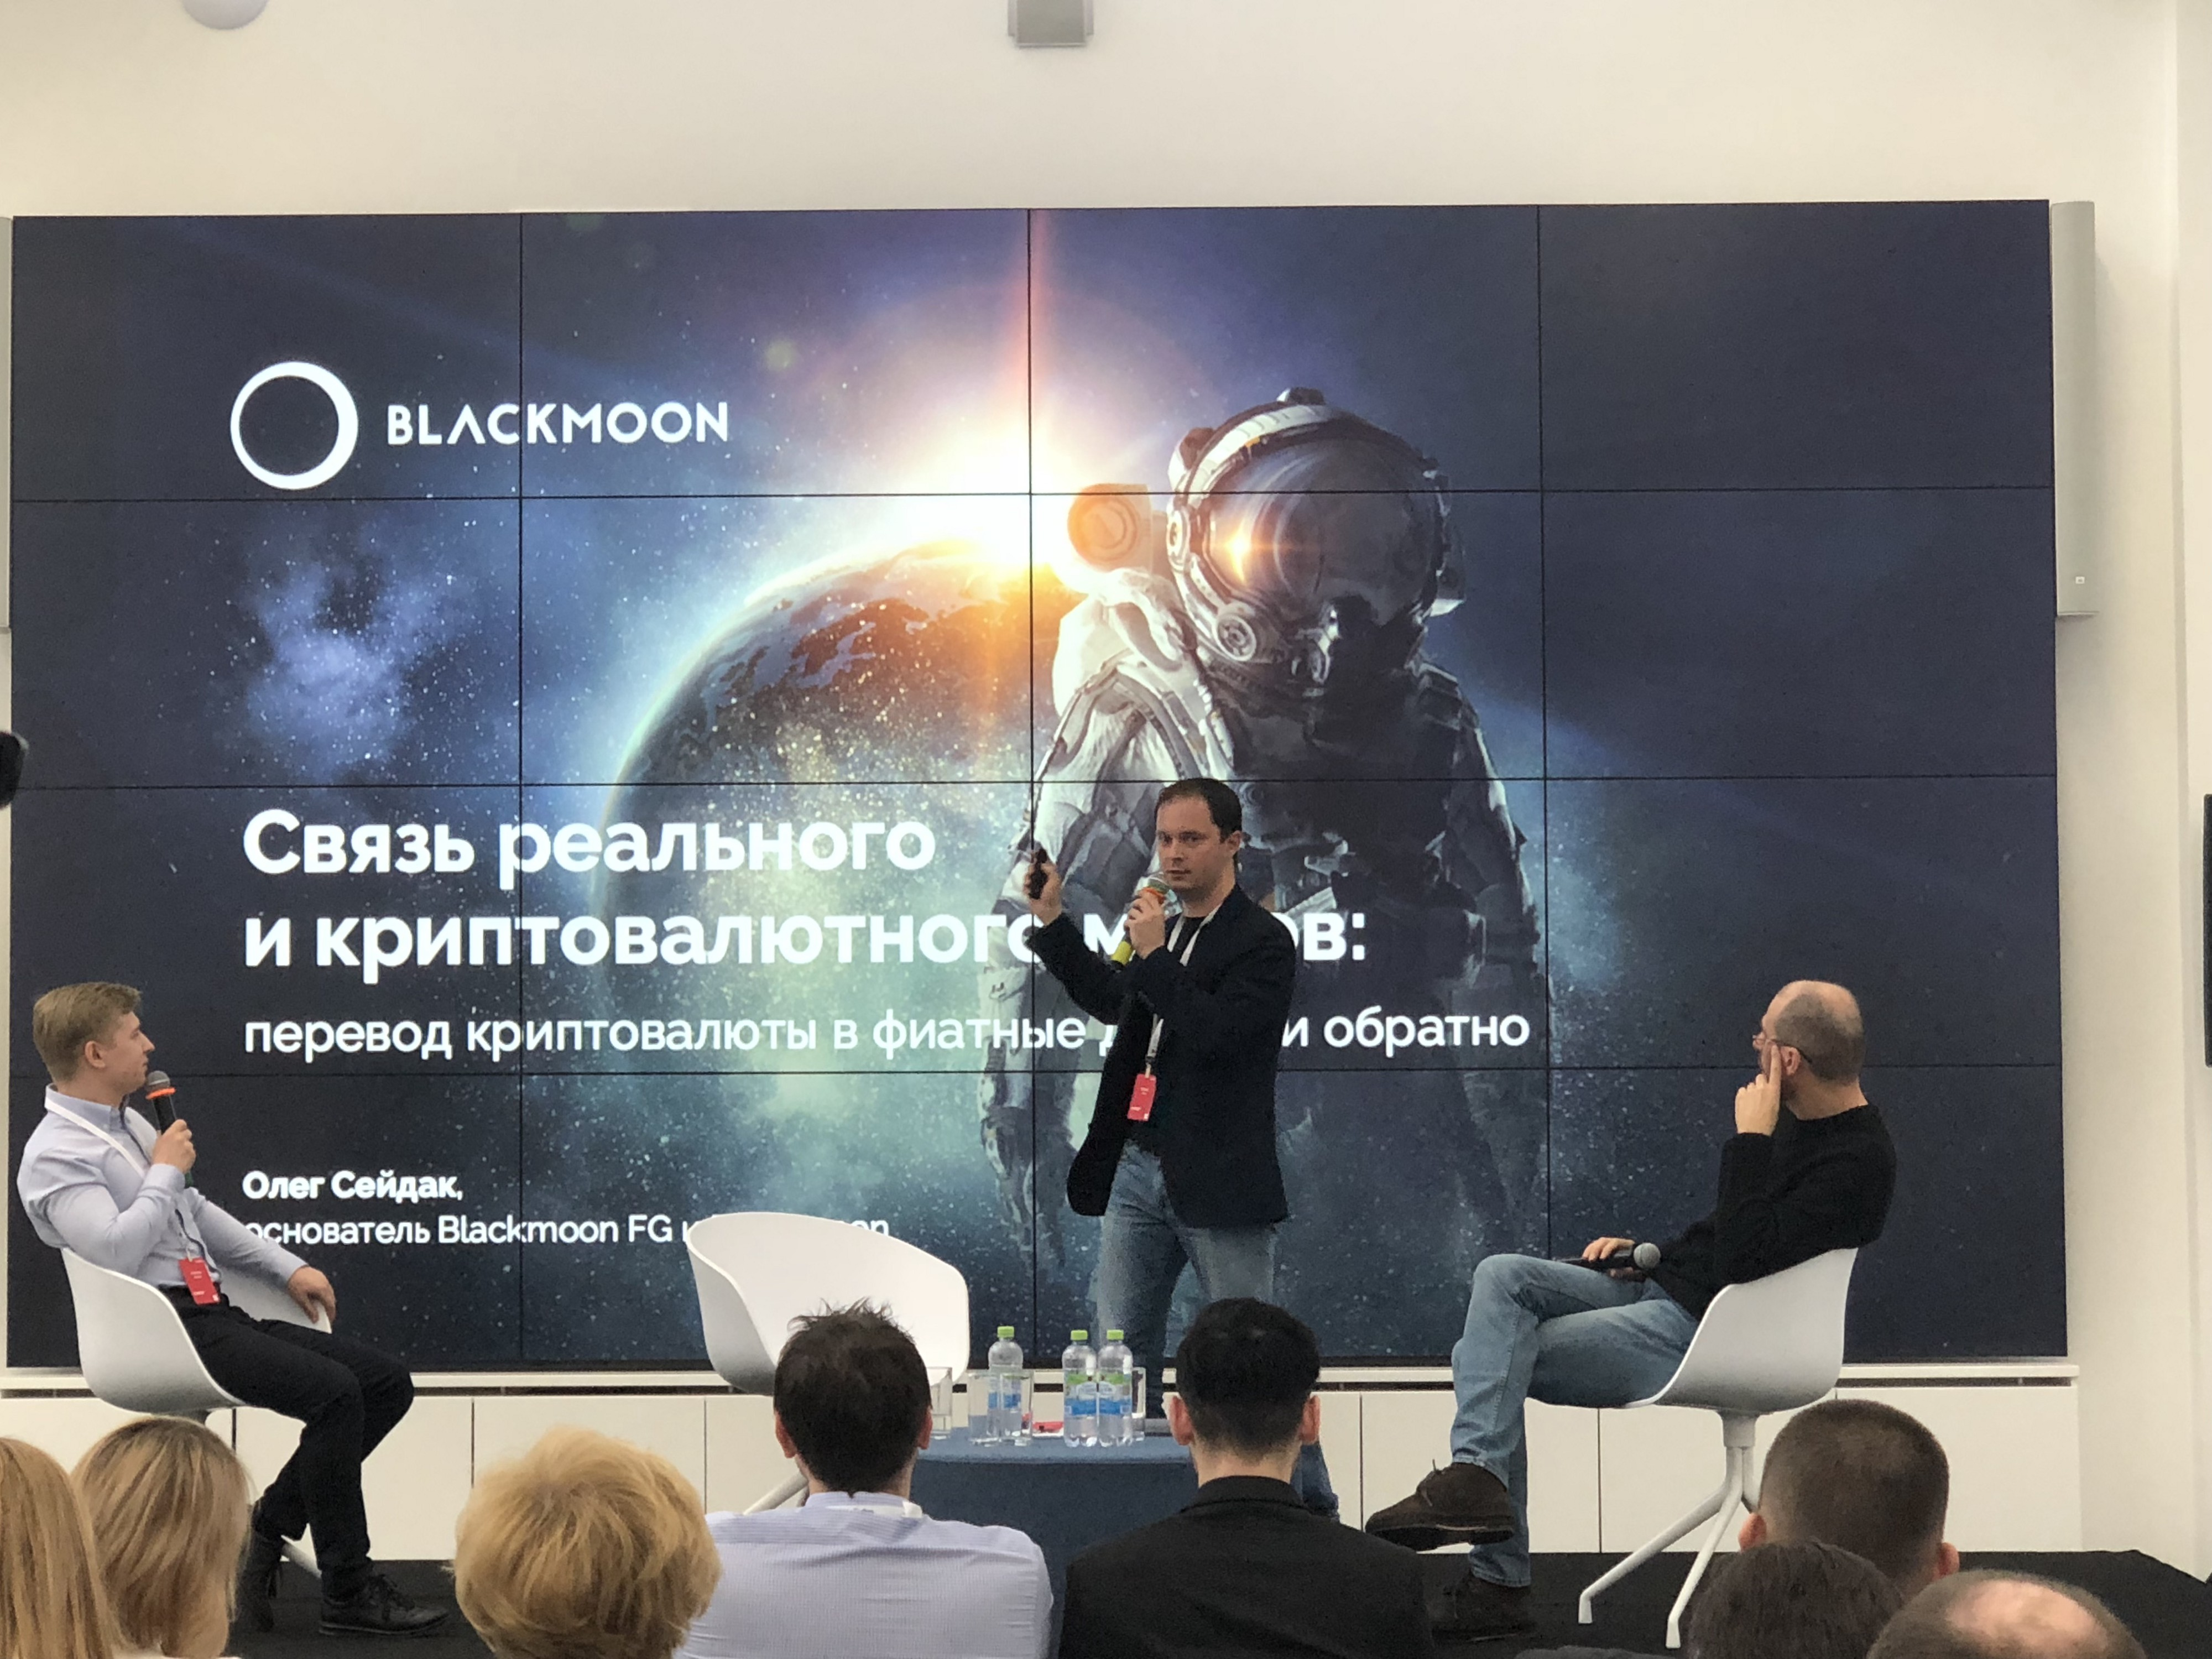 Blackmoon  Monthly Digest  March, 2018 - Blackmoon